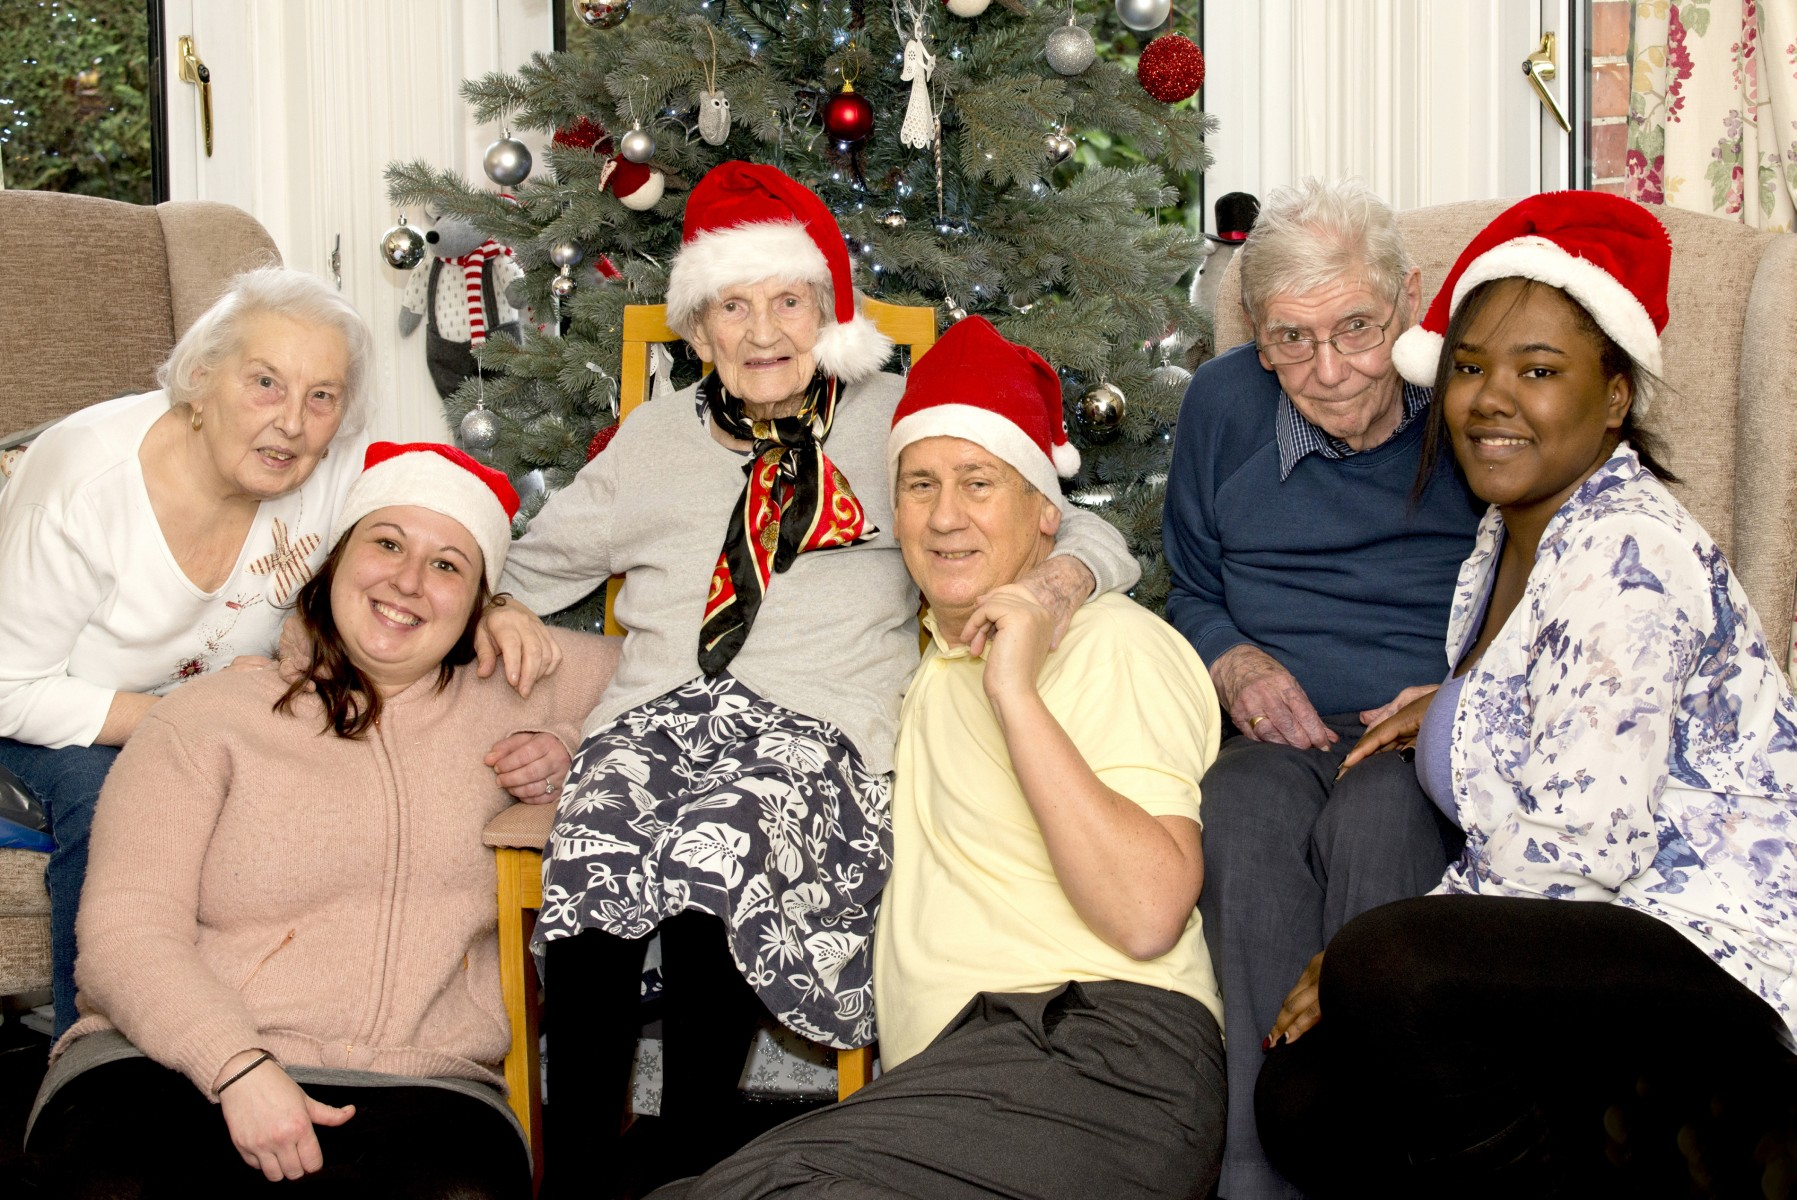 Goring care workers Christmas photo